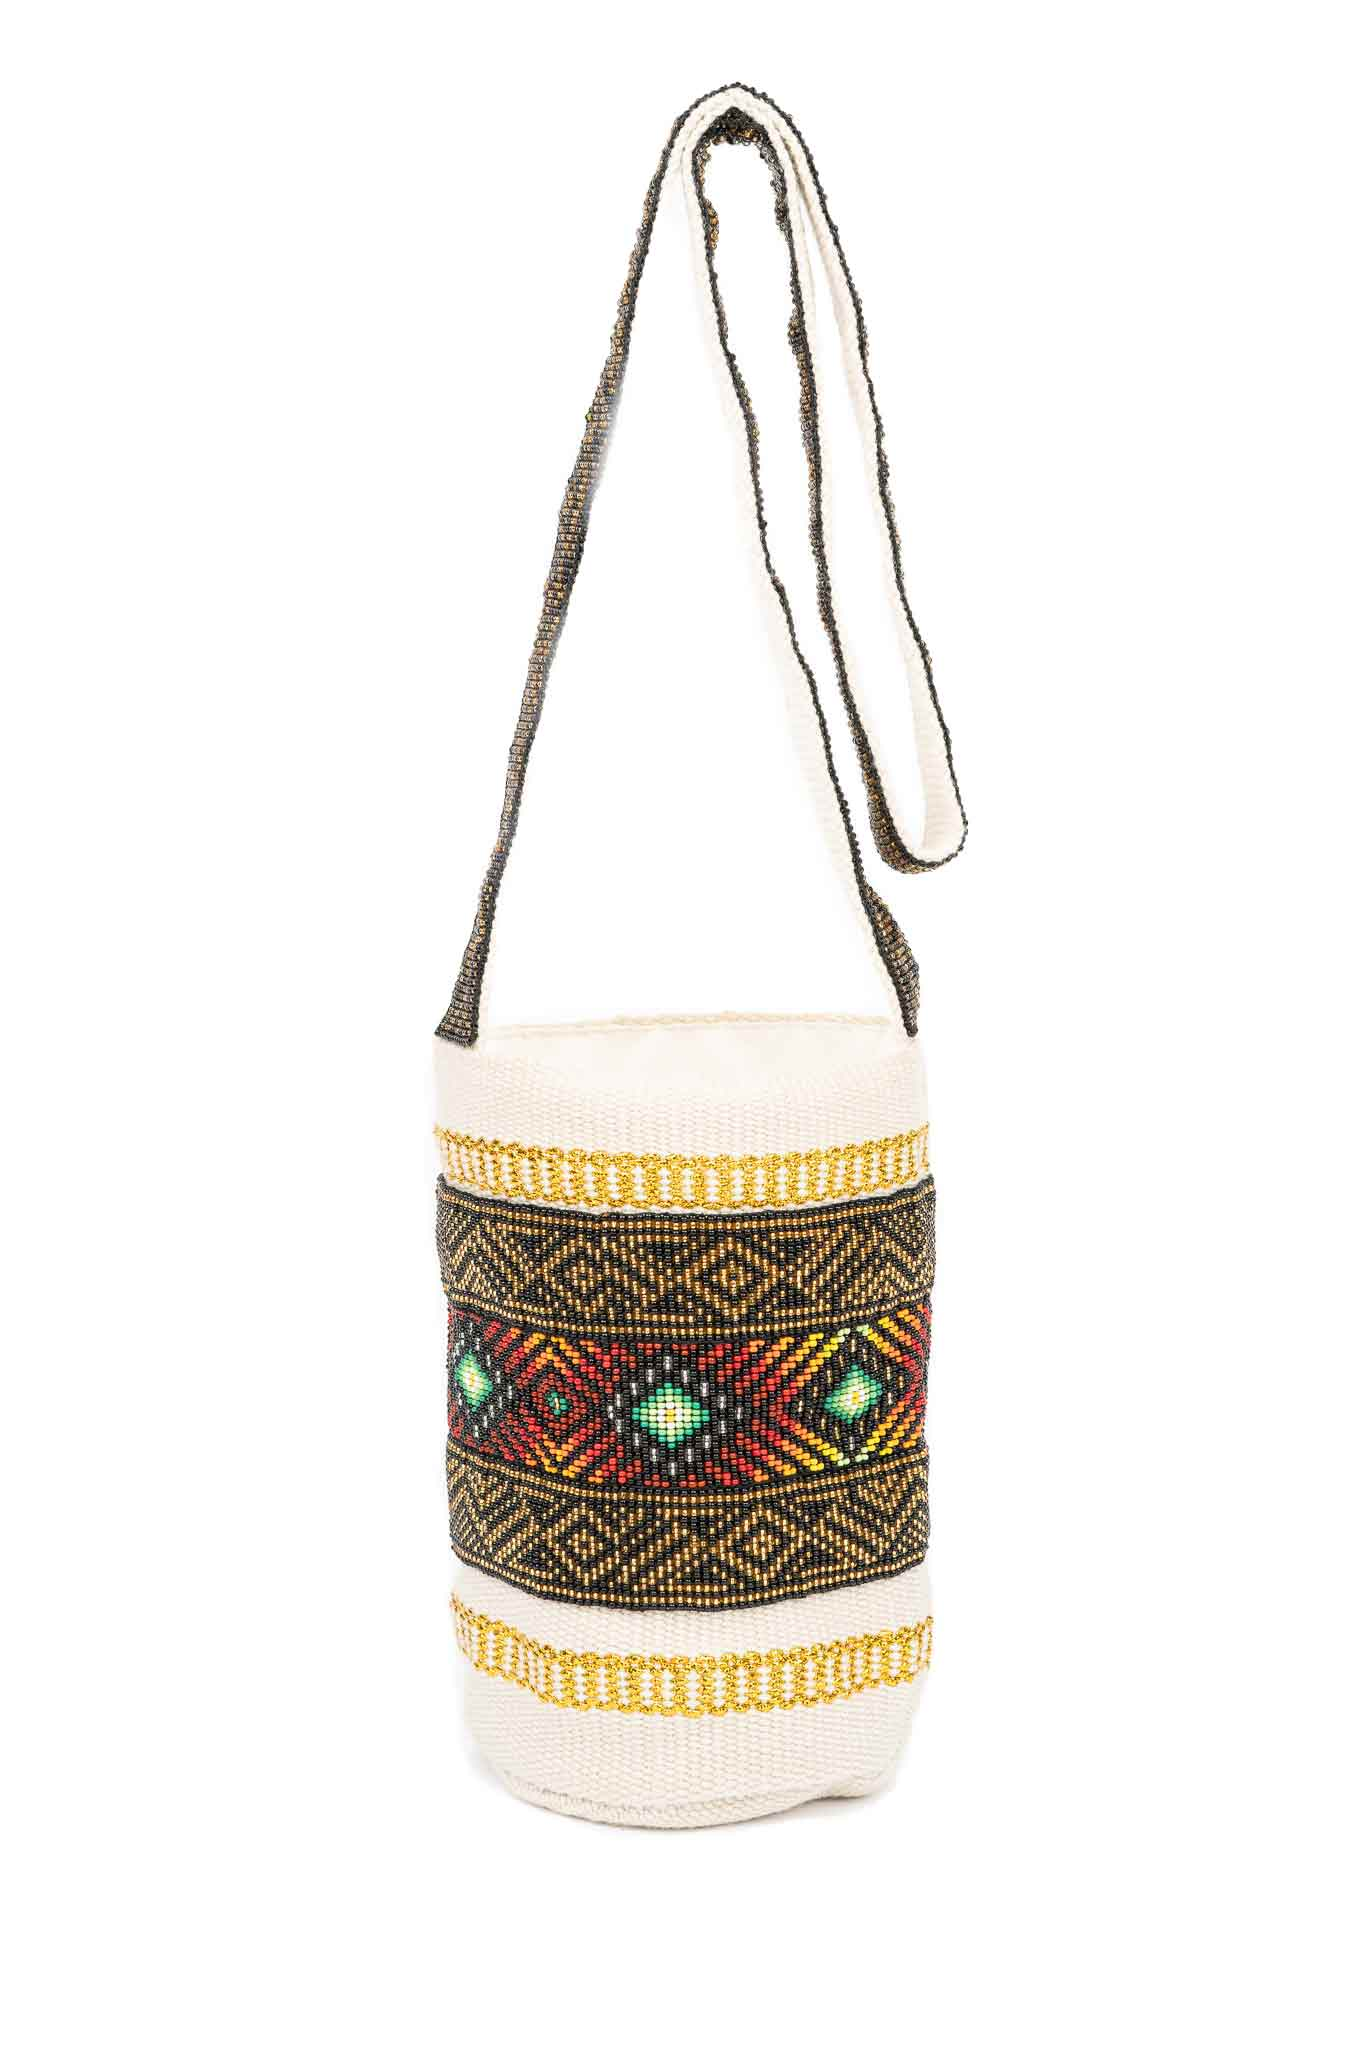 Kamentsa Luxurious Light Earth- White Bag